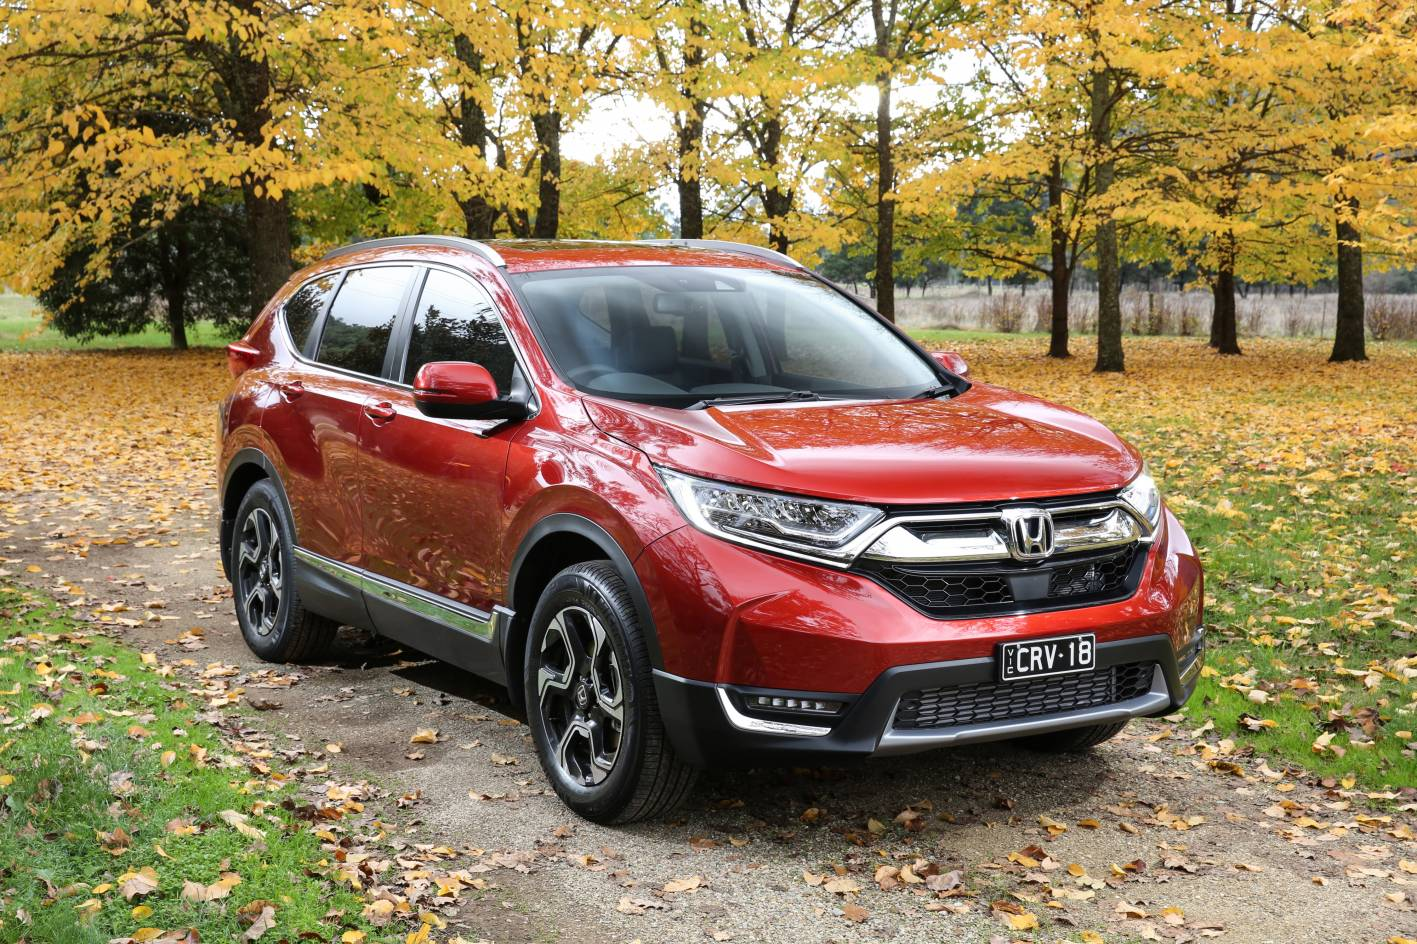 2018 Honda CR-V pricing and specification confirmed - ForceGT.com